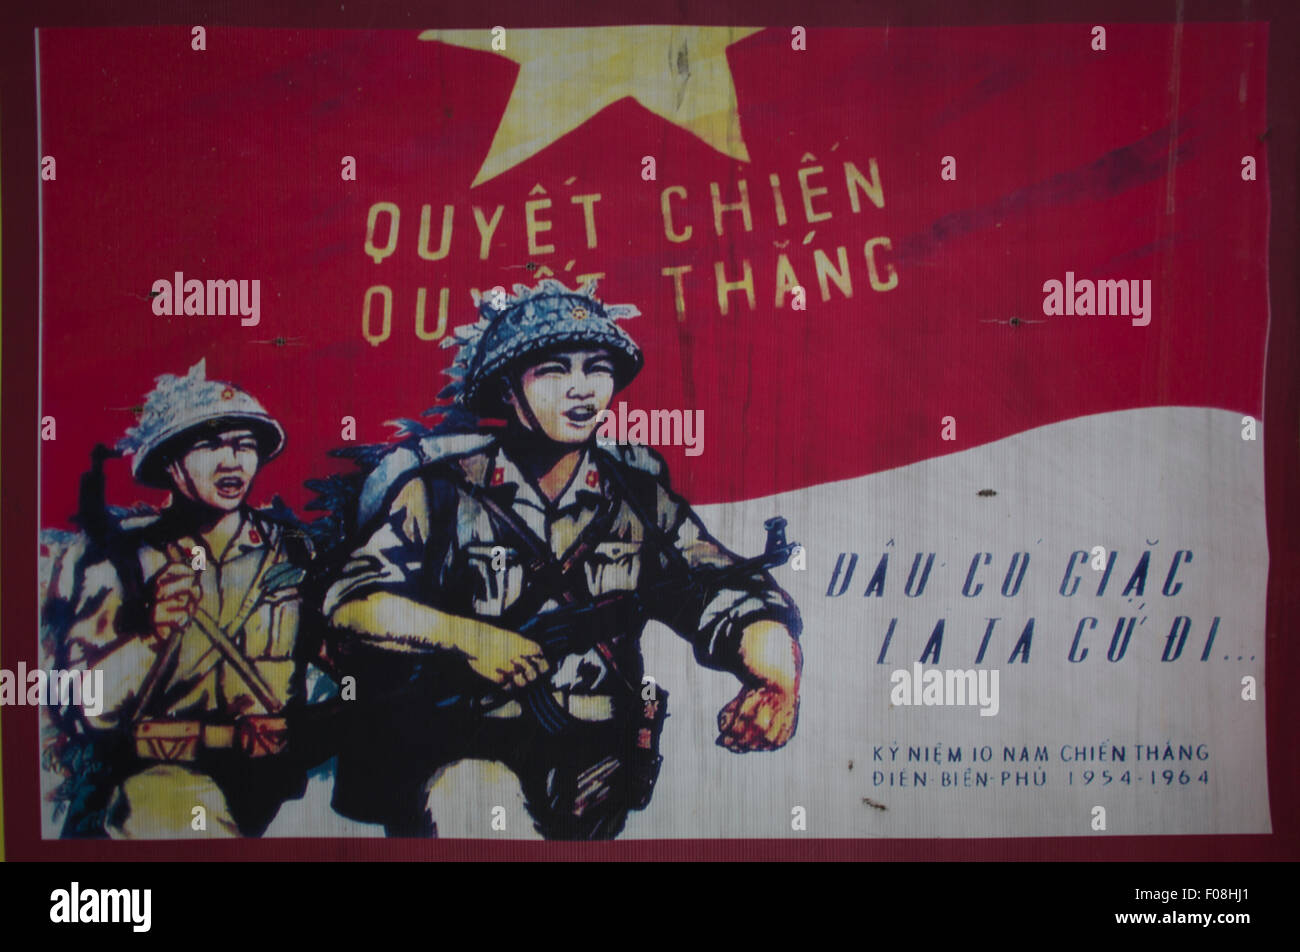 old propaganda poster showing vietcong soldiers - Stock Image